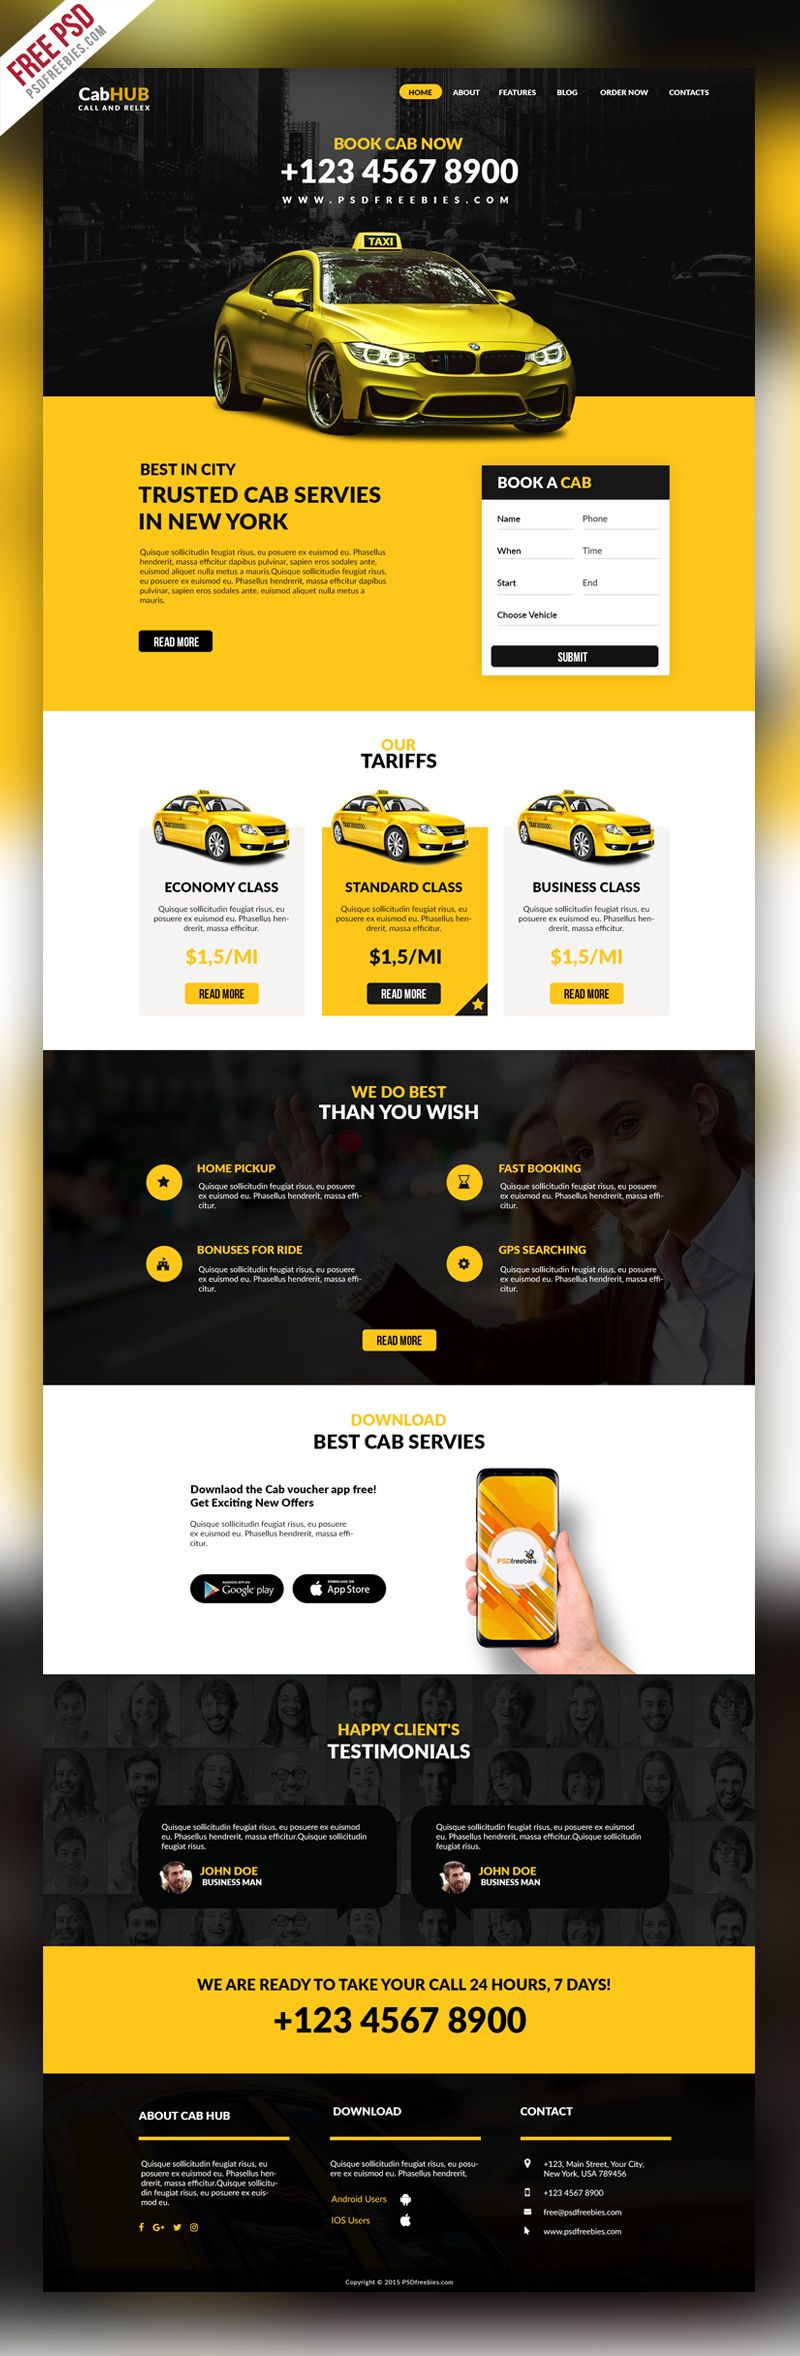 Taxi Cab Service Company Website Template PSD | Free Web Templates